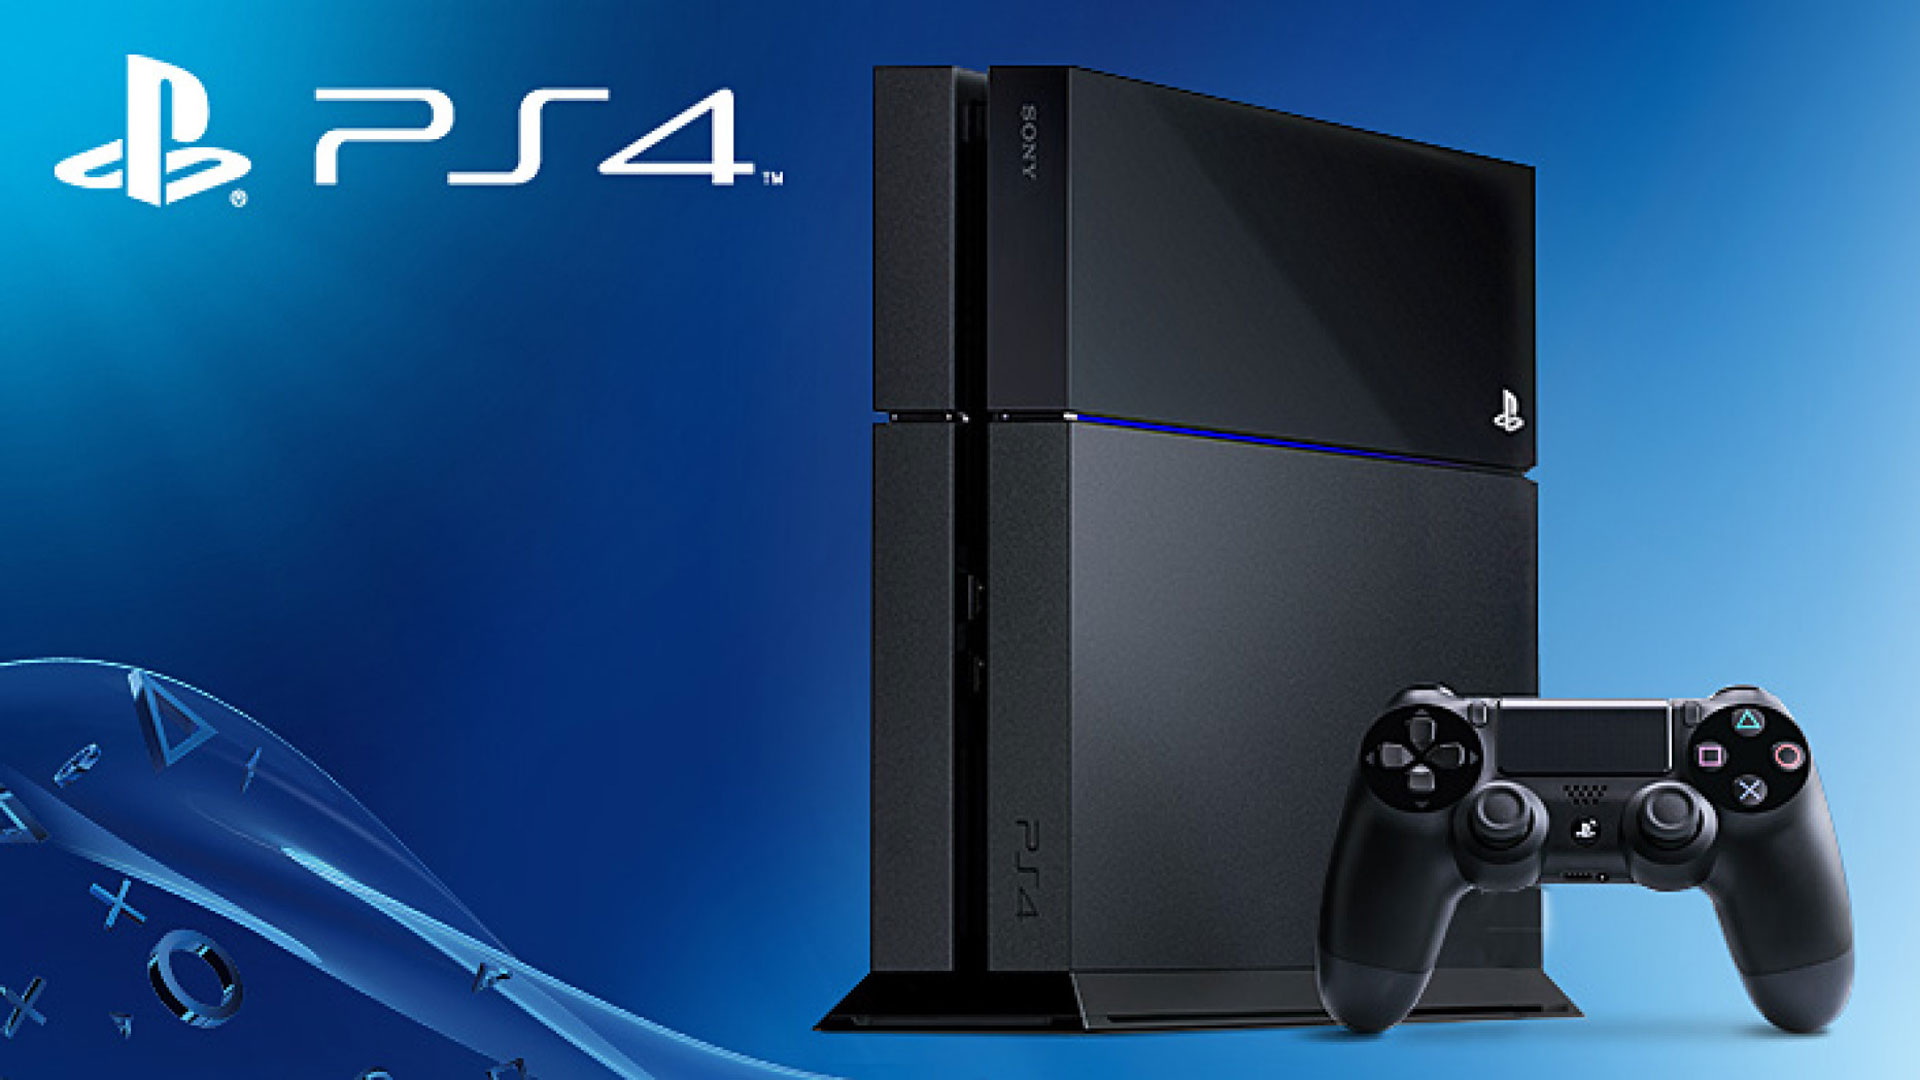 PS4 has limited storage space which cannot handle all the data an enthusiast wishes to store